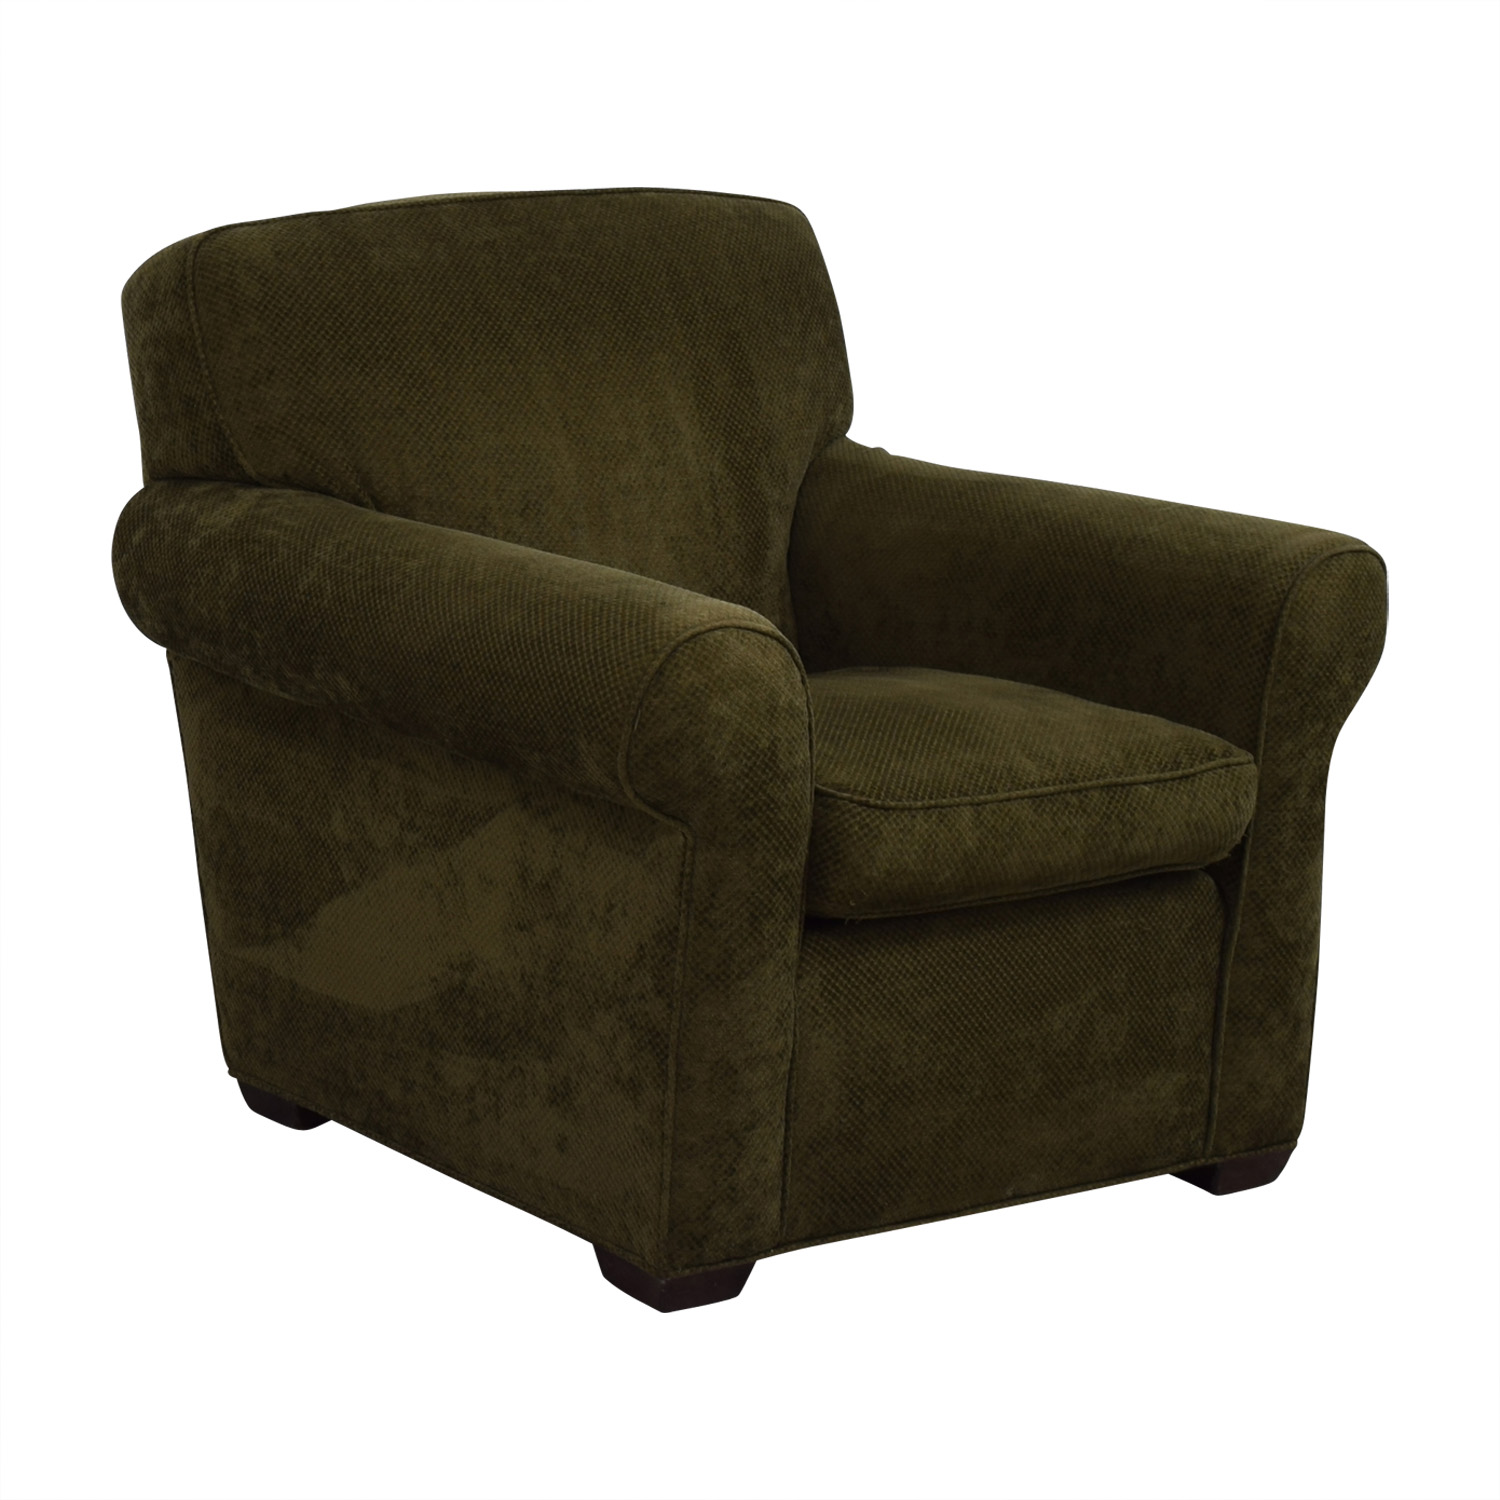 Large Olive Green Accent Chair nyc